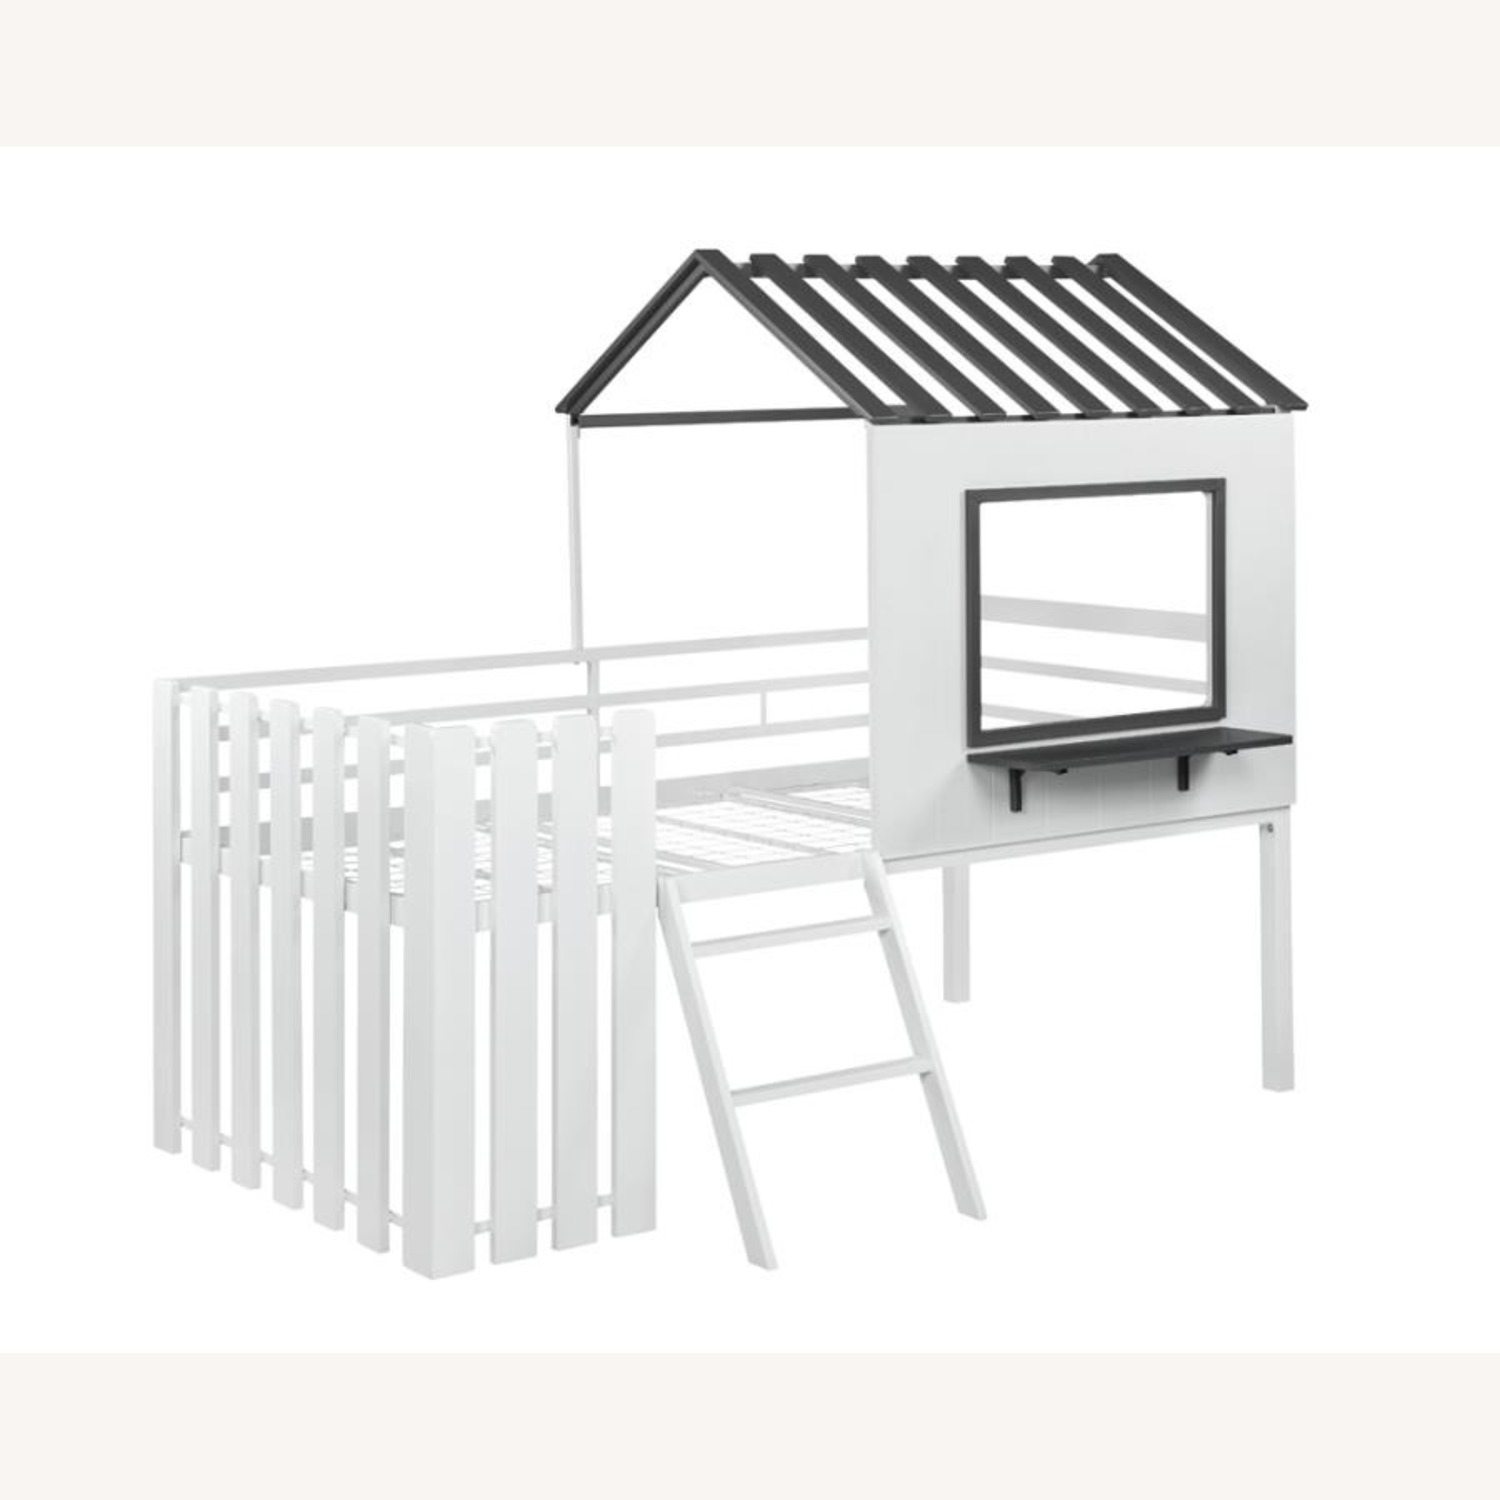 House-Themed Twin Loft Bed In Two-Tone Finish - image-0